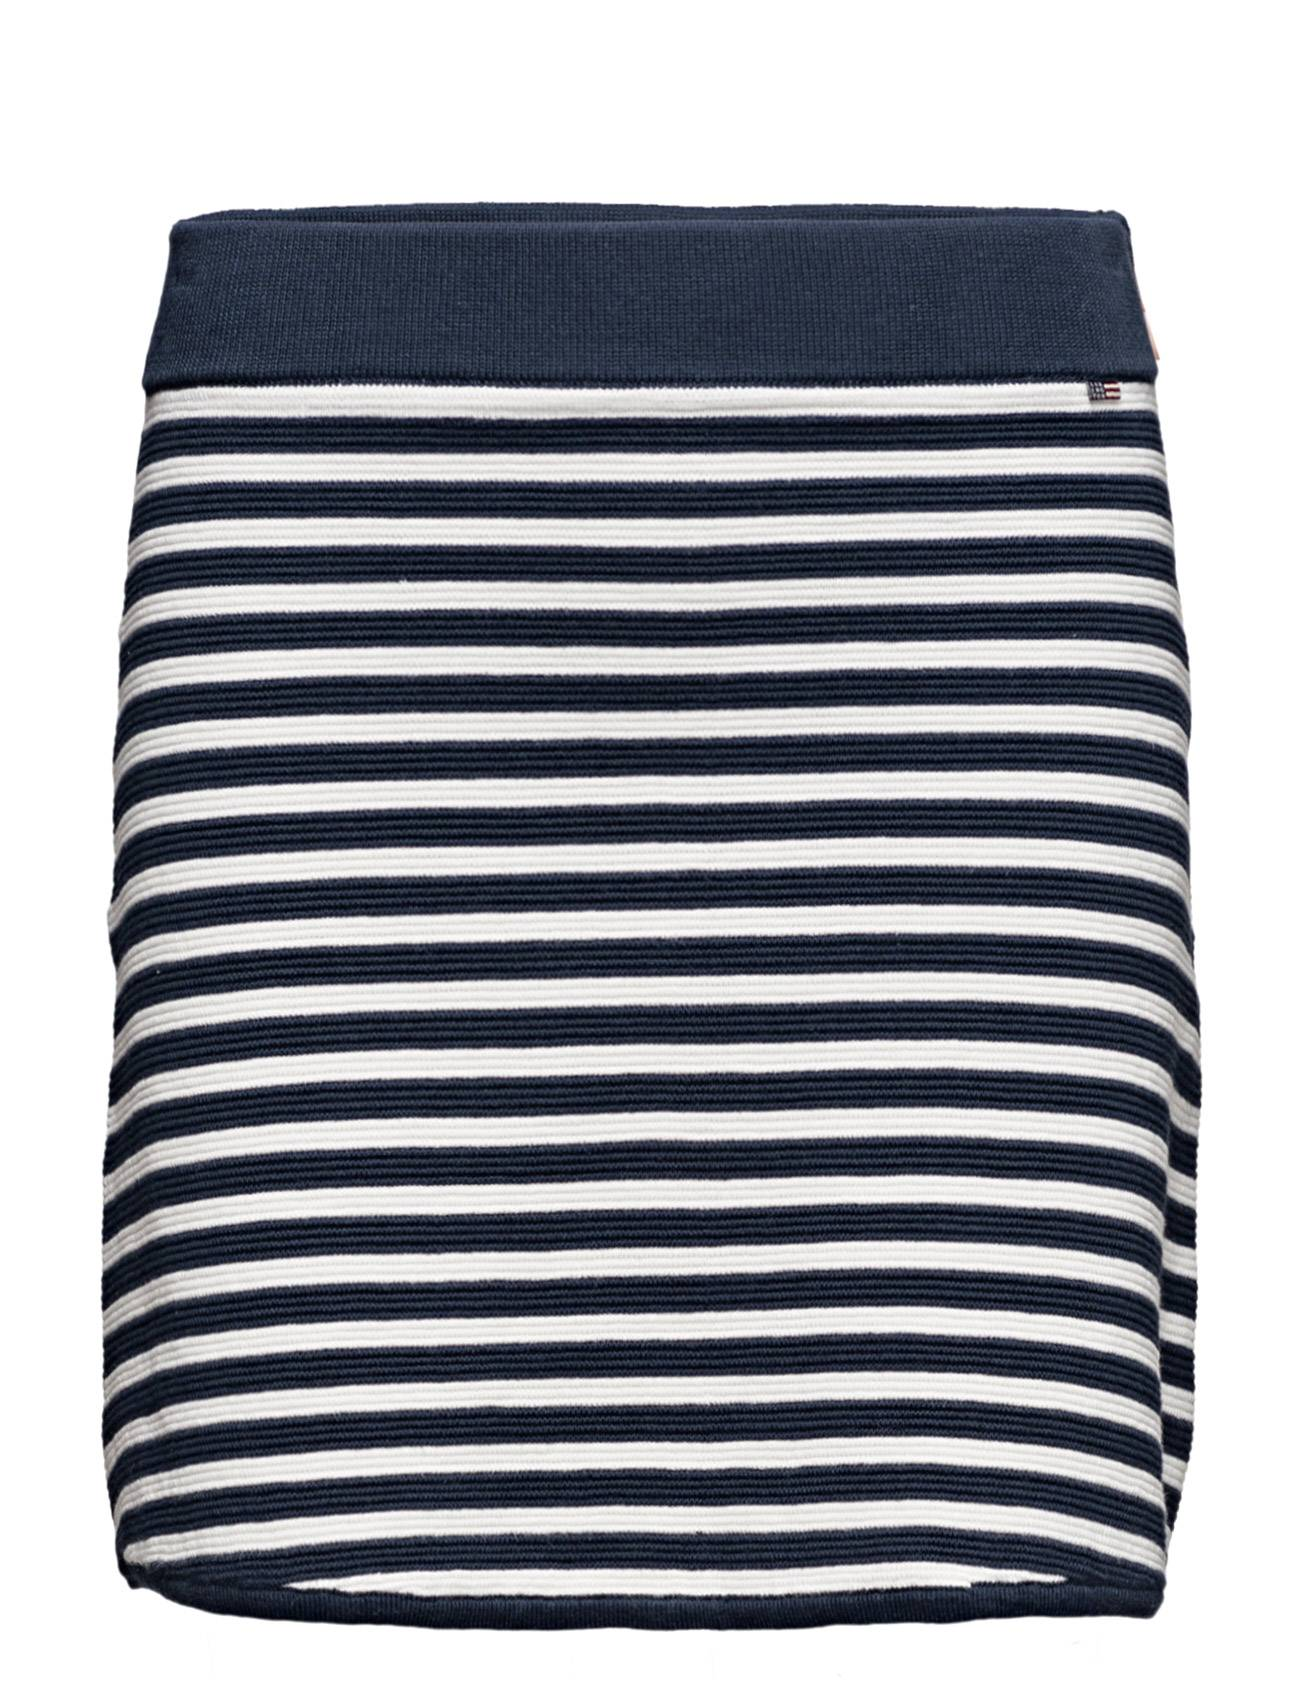 Lexington Company Chastity Knitted Skirt